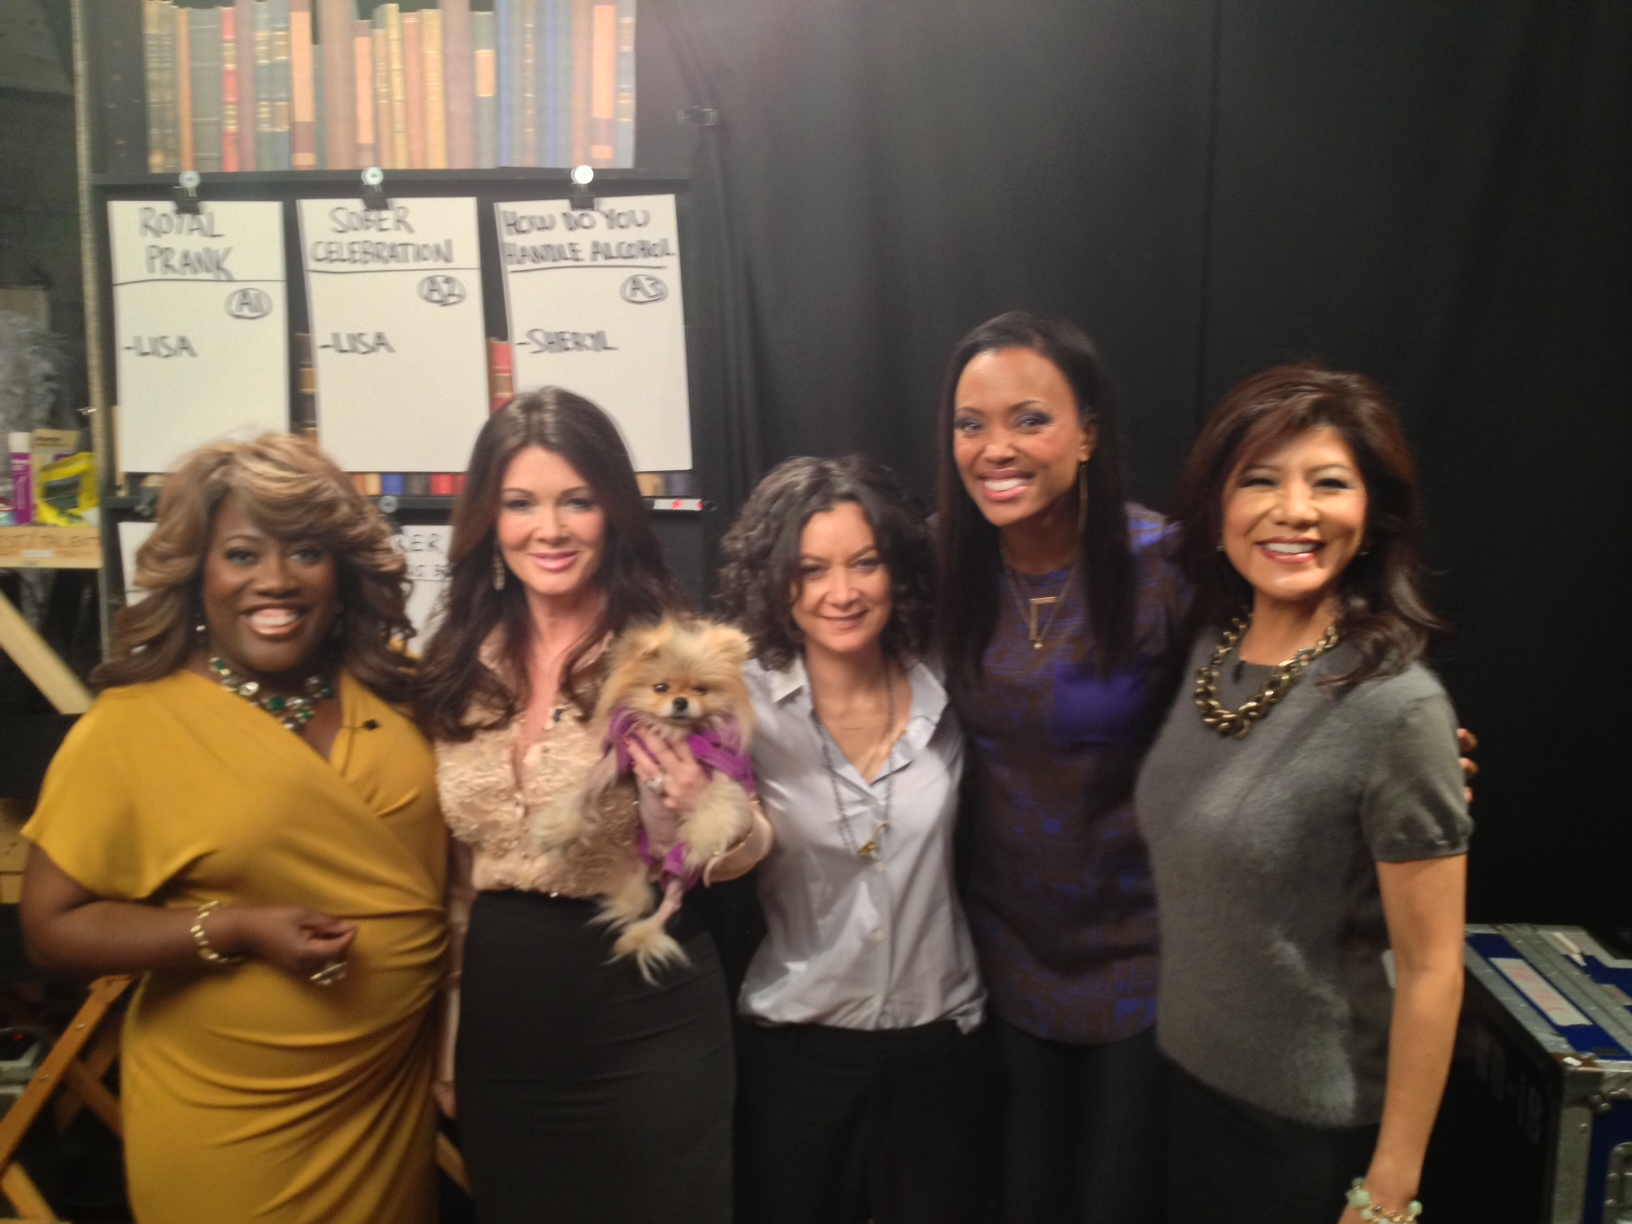 The Ladies & Lisa Vanderpump